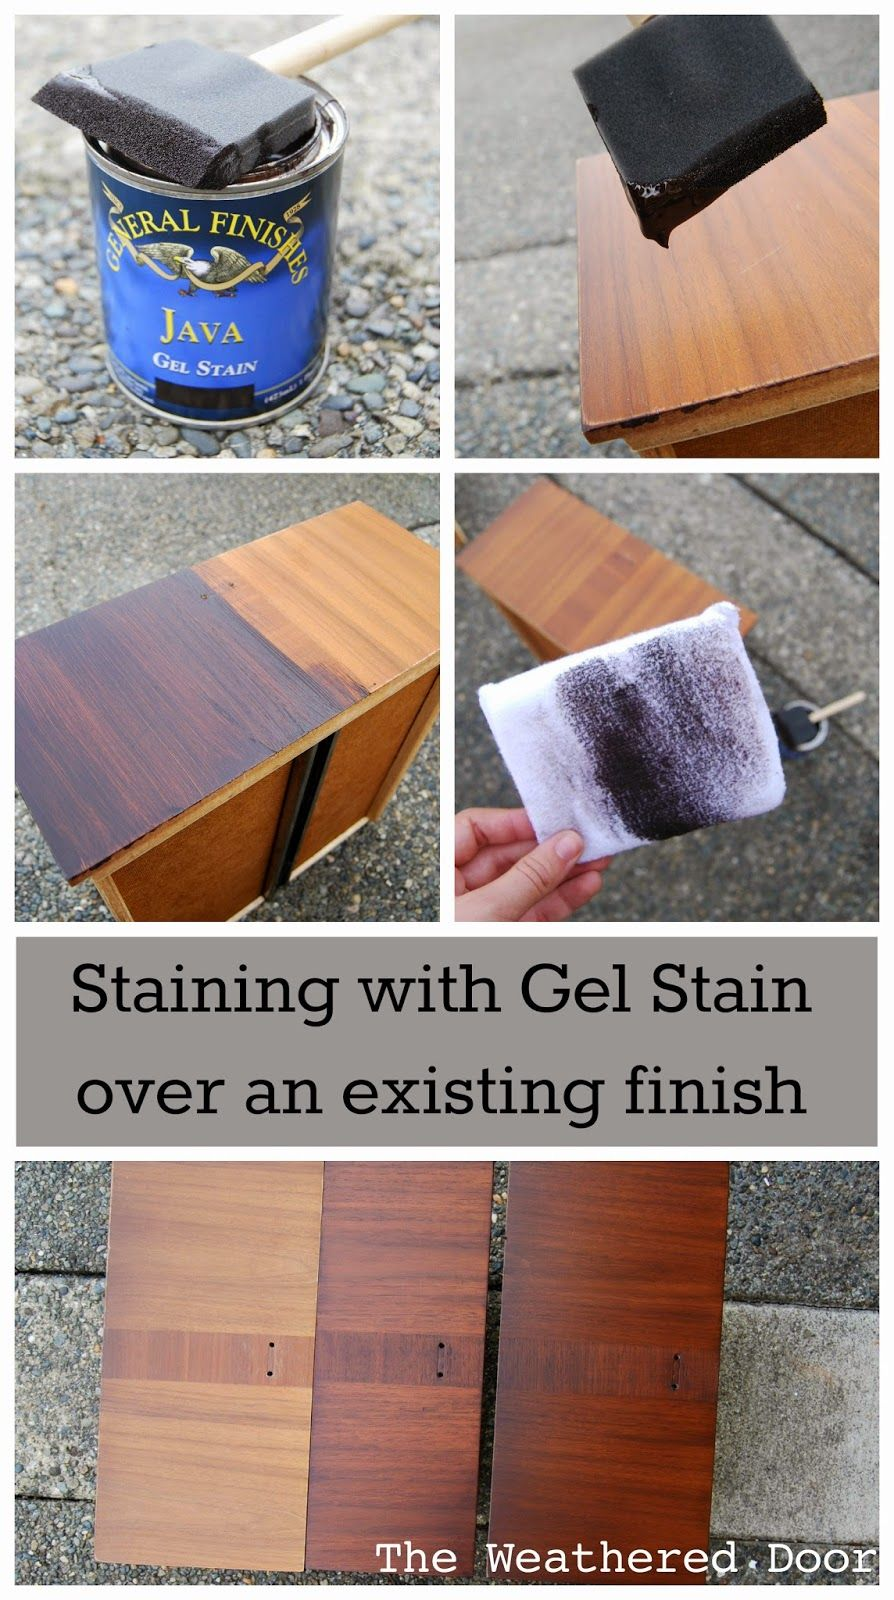 Staining With Gel Stain Over An Existing Finish From The